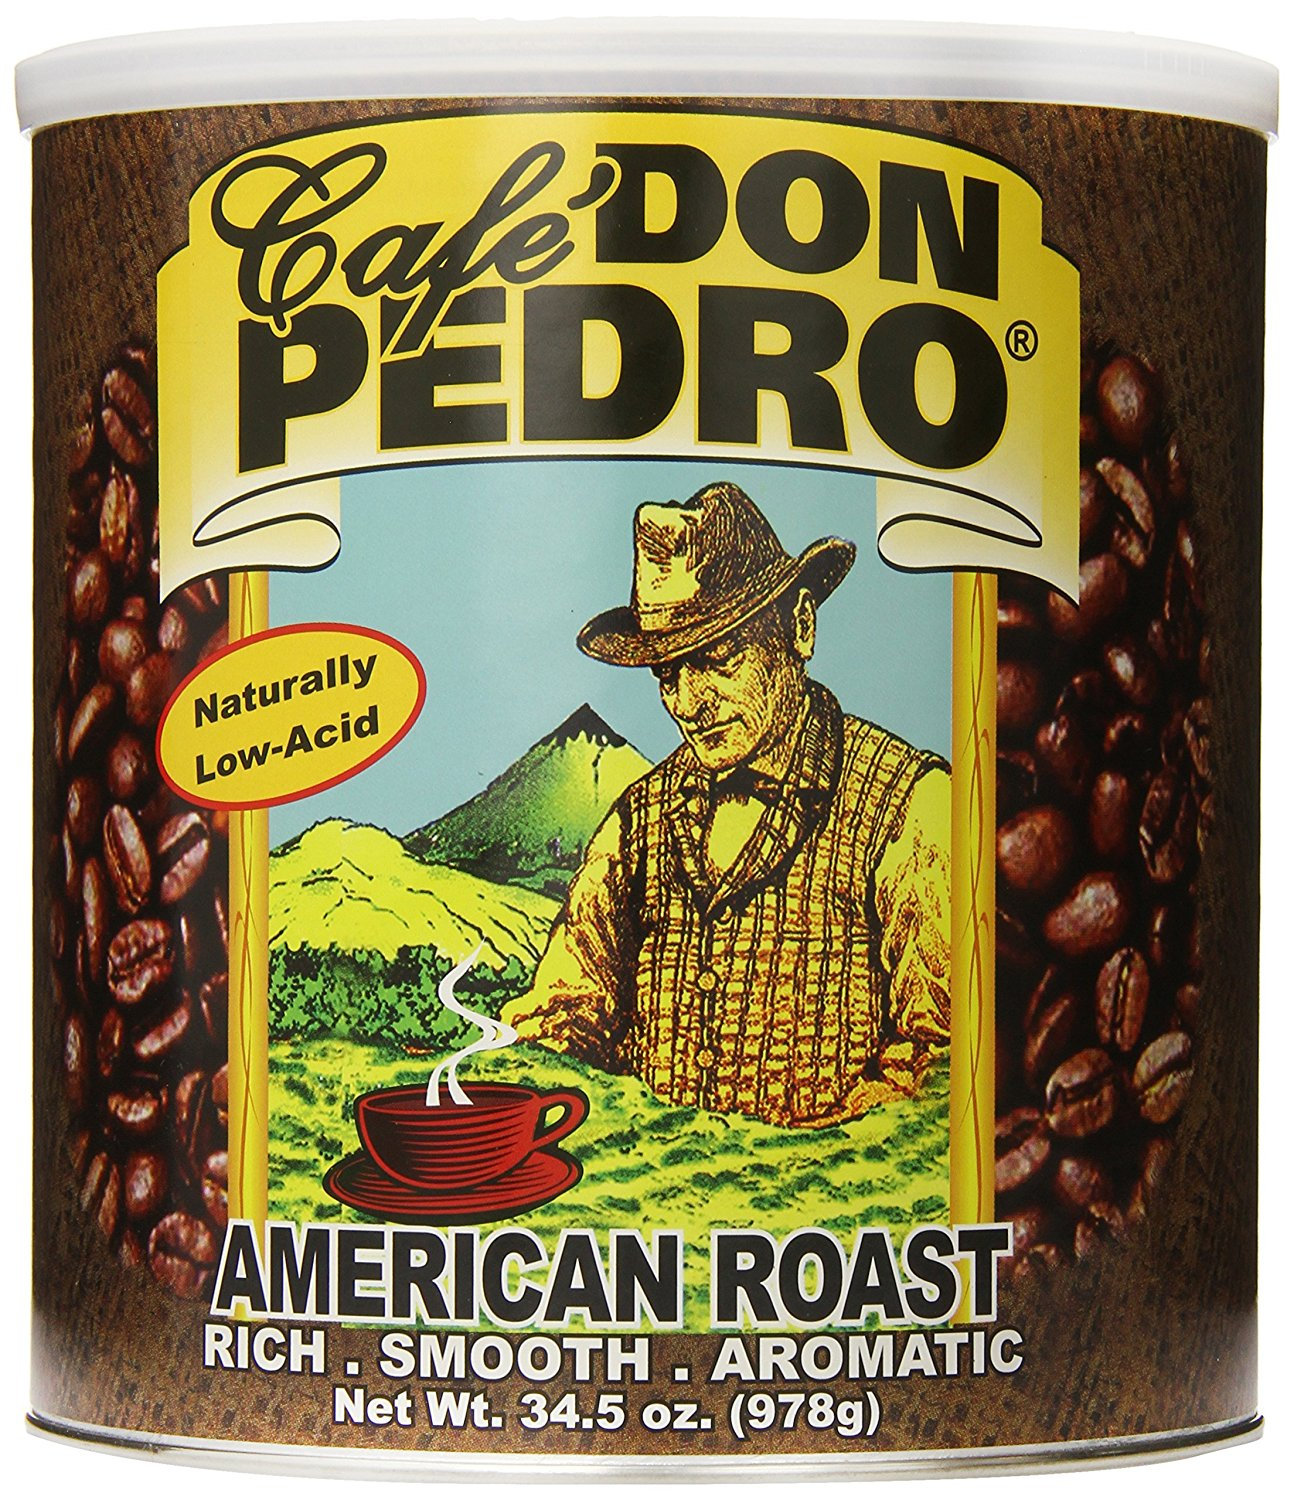 cafe-don-pedro